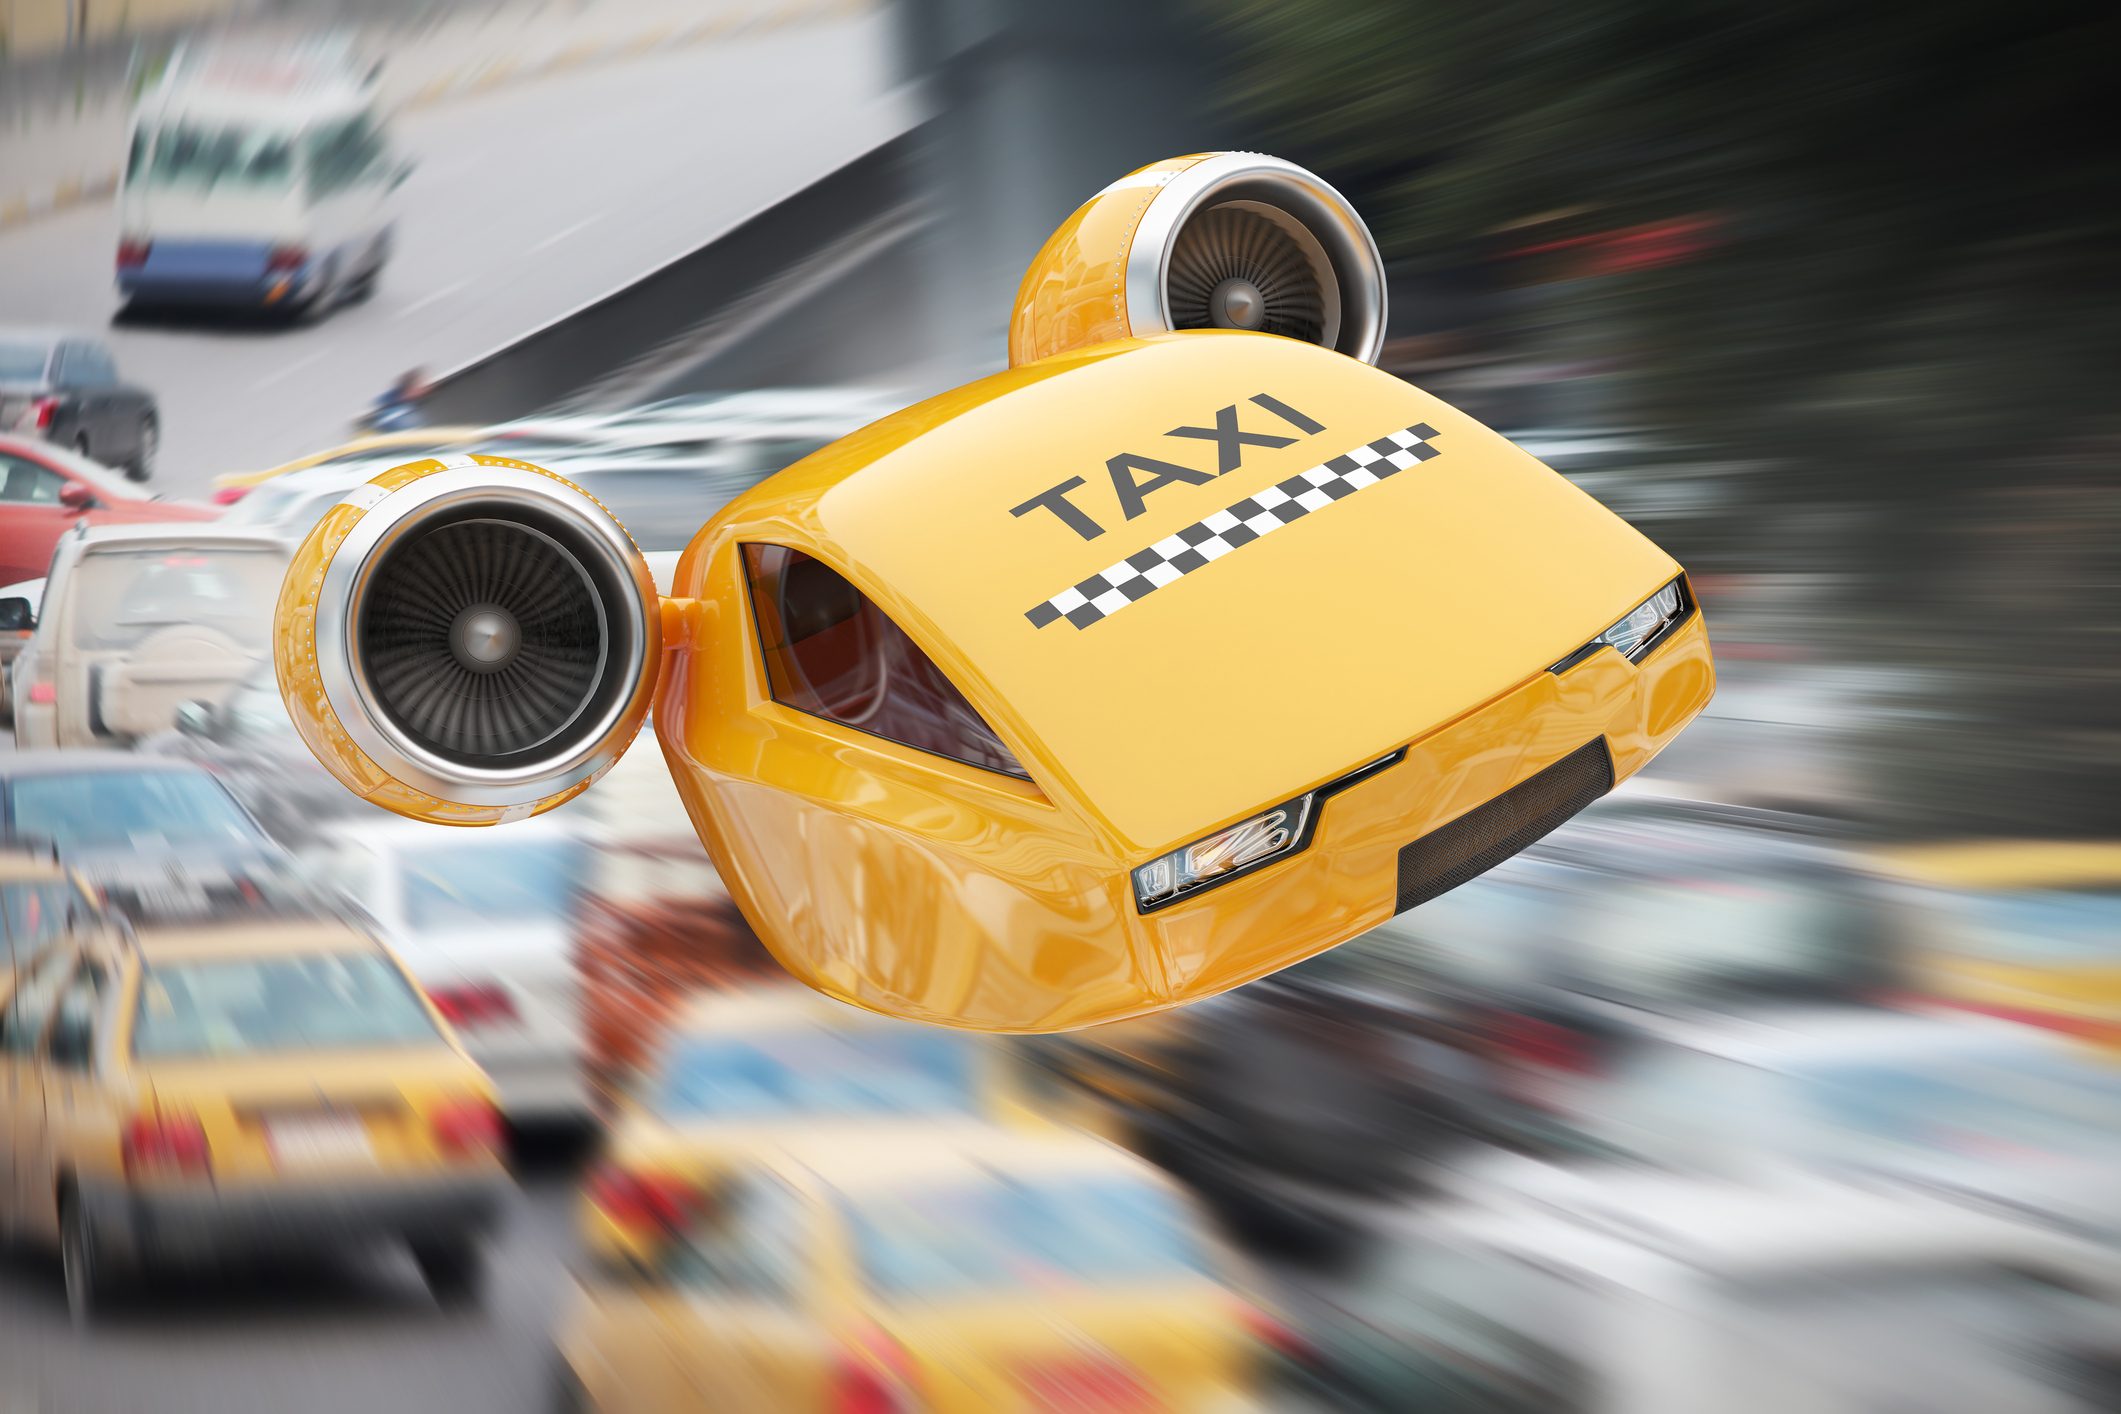 How Safe will Flying Taxis and Self-Driving Vehicles be from Cyber Attacks?